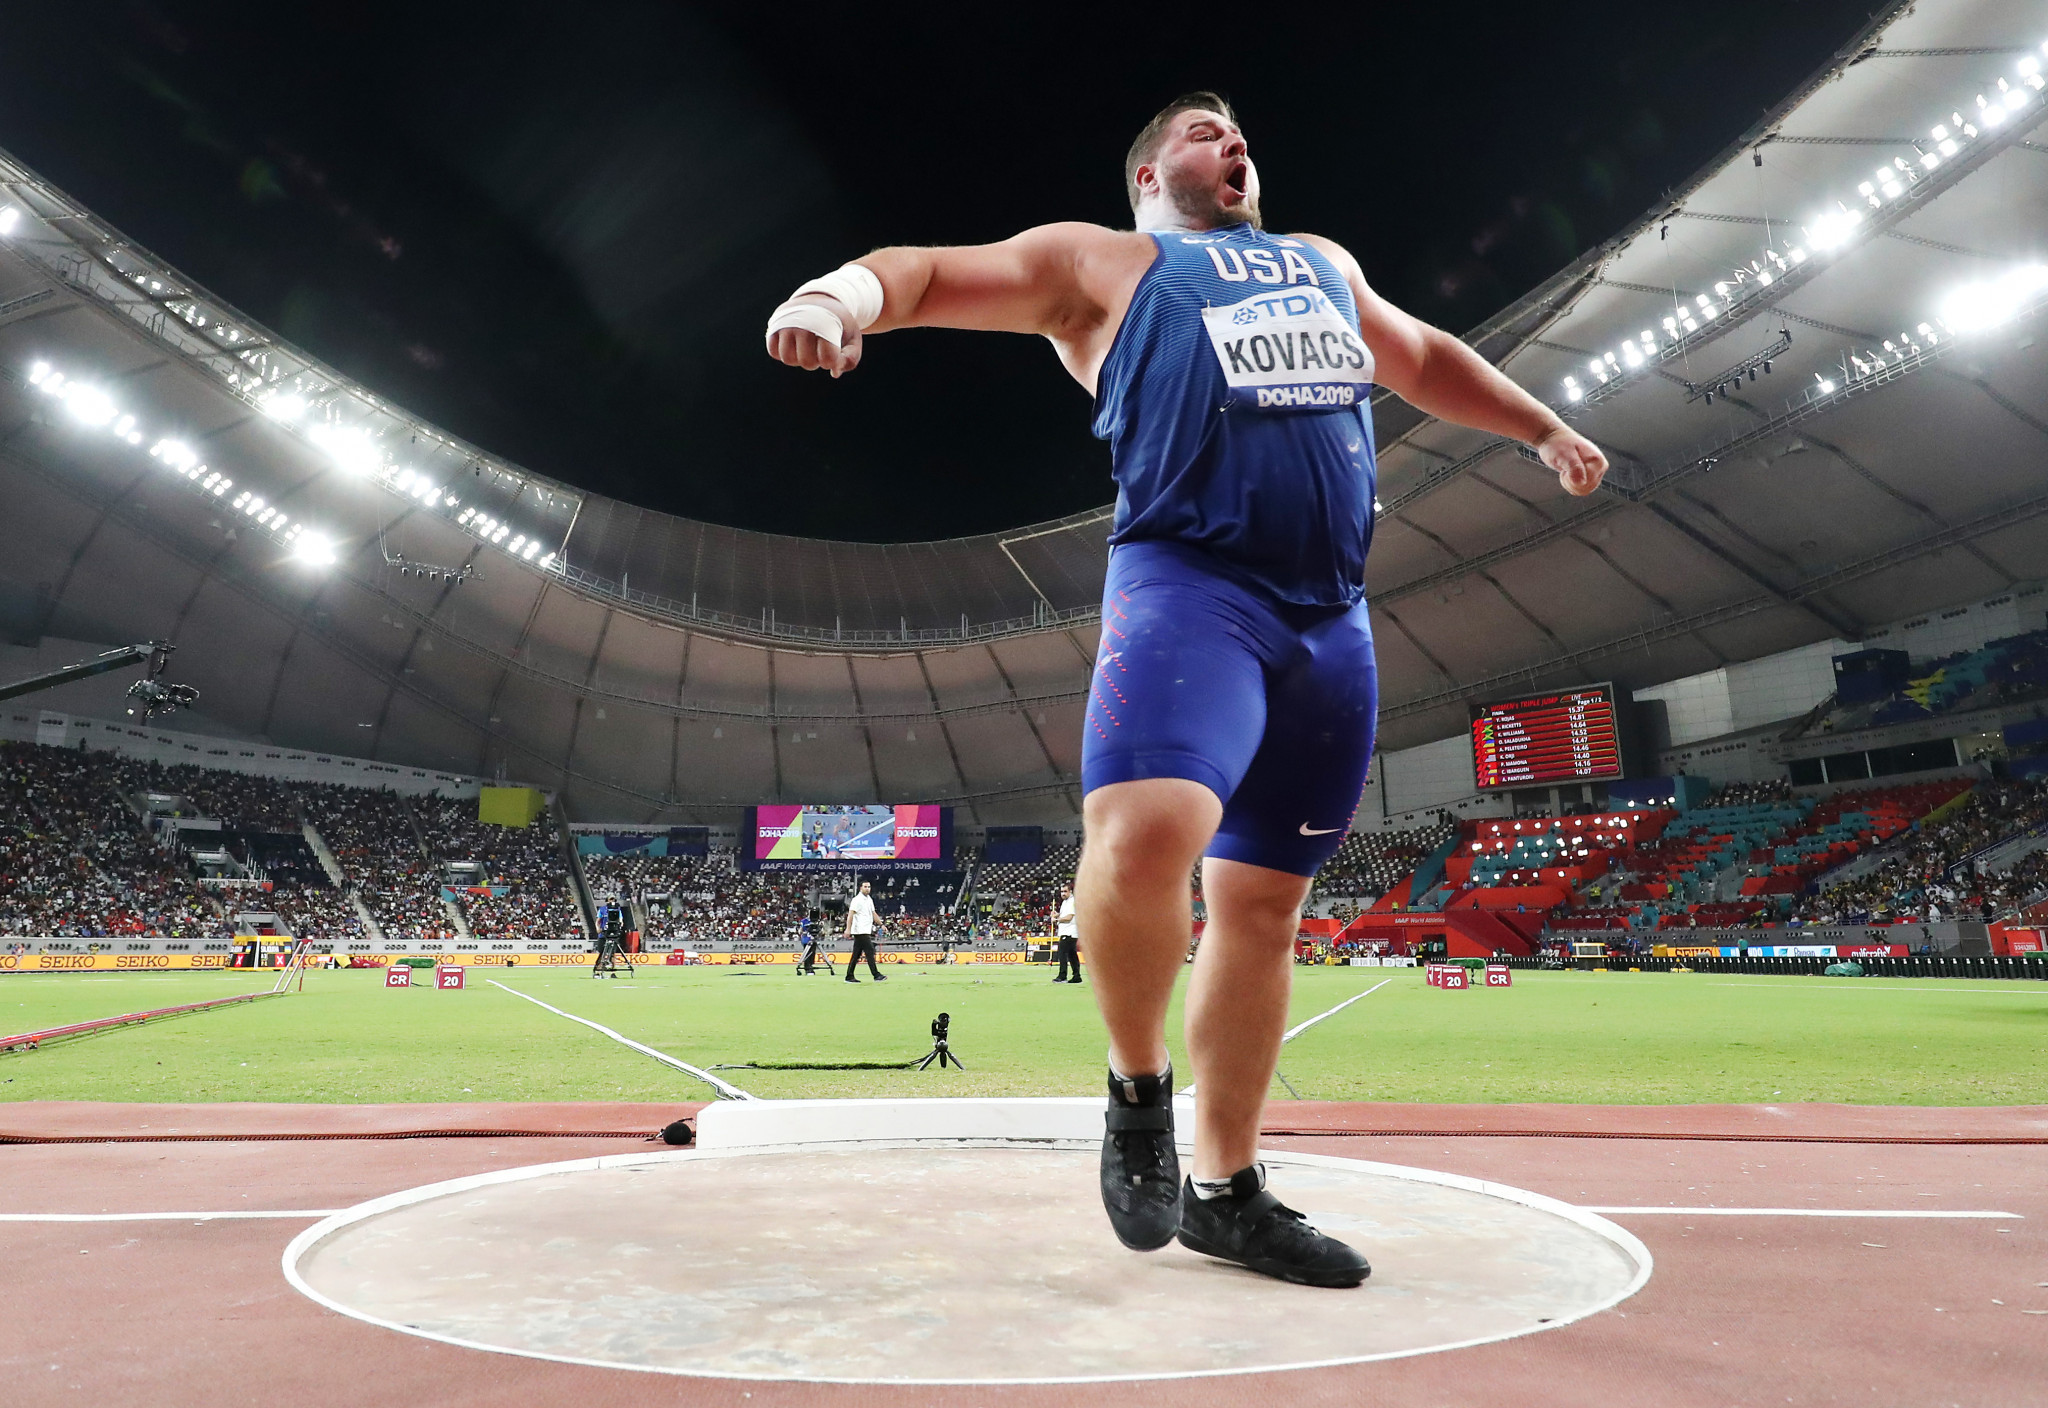 Joe Kovacs regained his world shot put title with a last effort of 22.91m - the third best ever recorded - to win a titanic battle in which the top three all finished within one centimetre of each other ©Getty Images